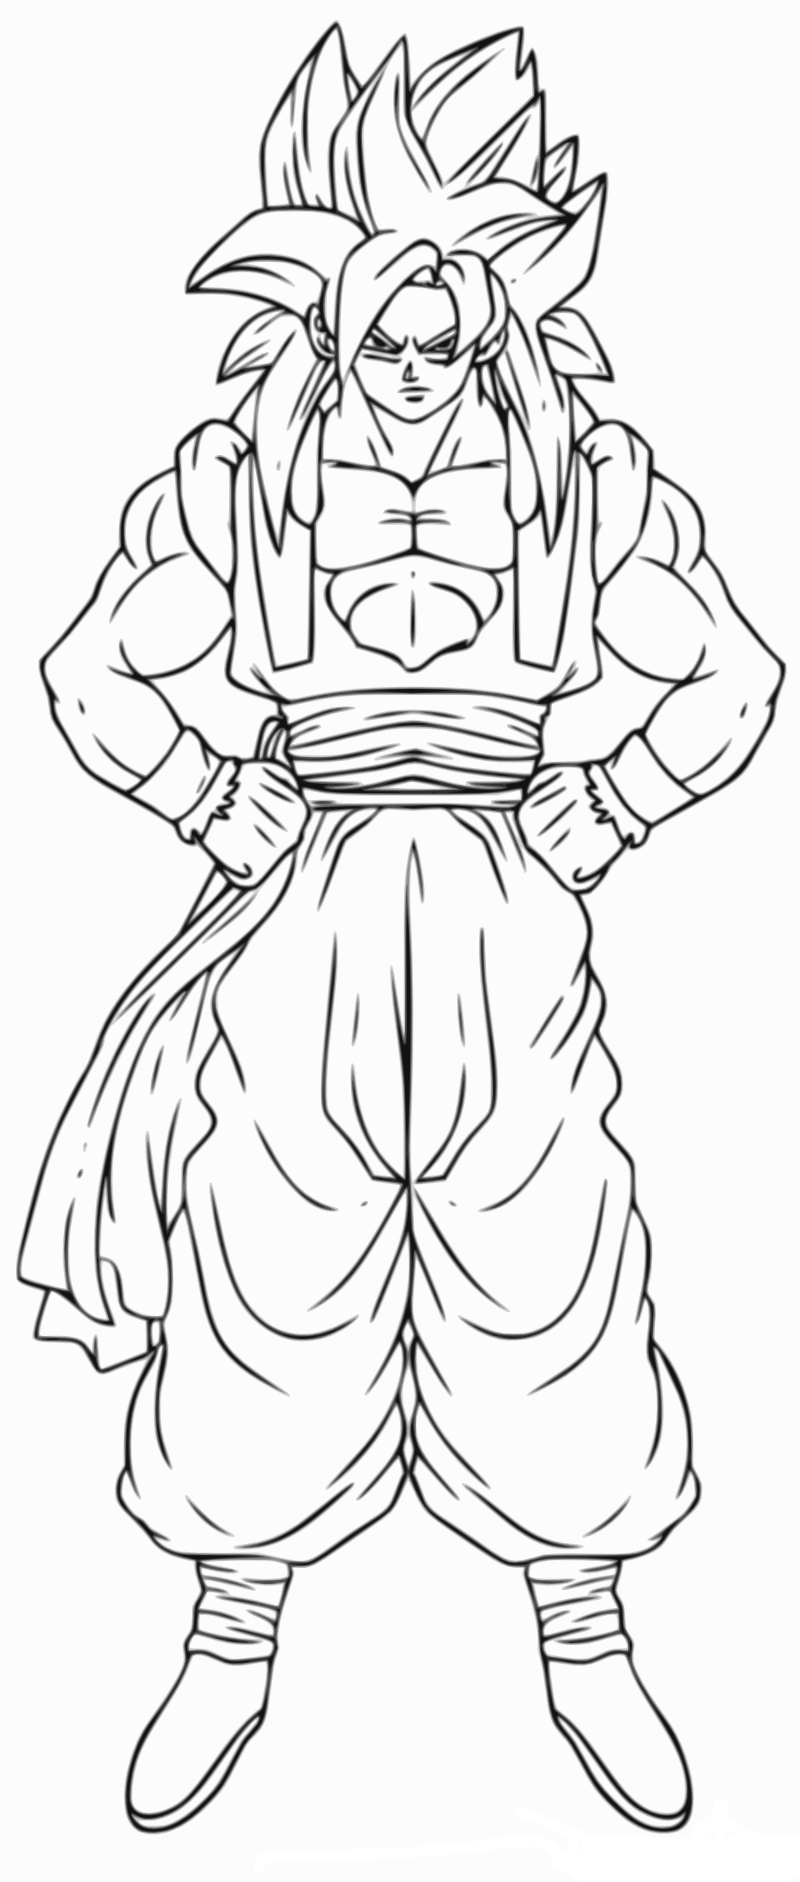 Coloriage dragon ball z broly imprimer et colorier - Coloriage gratuit dragon ball z ...